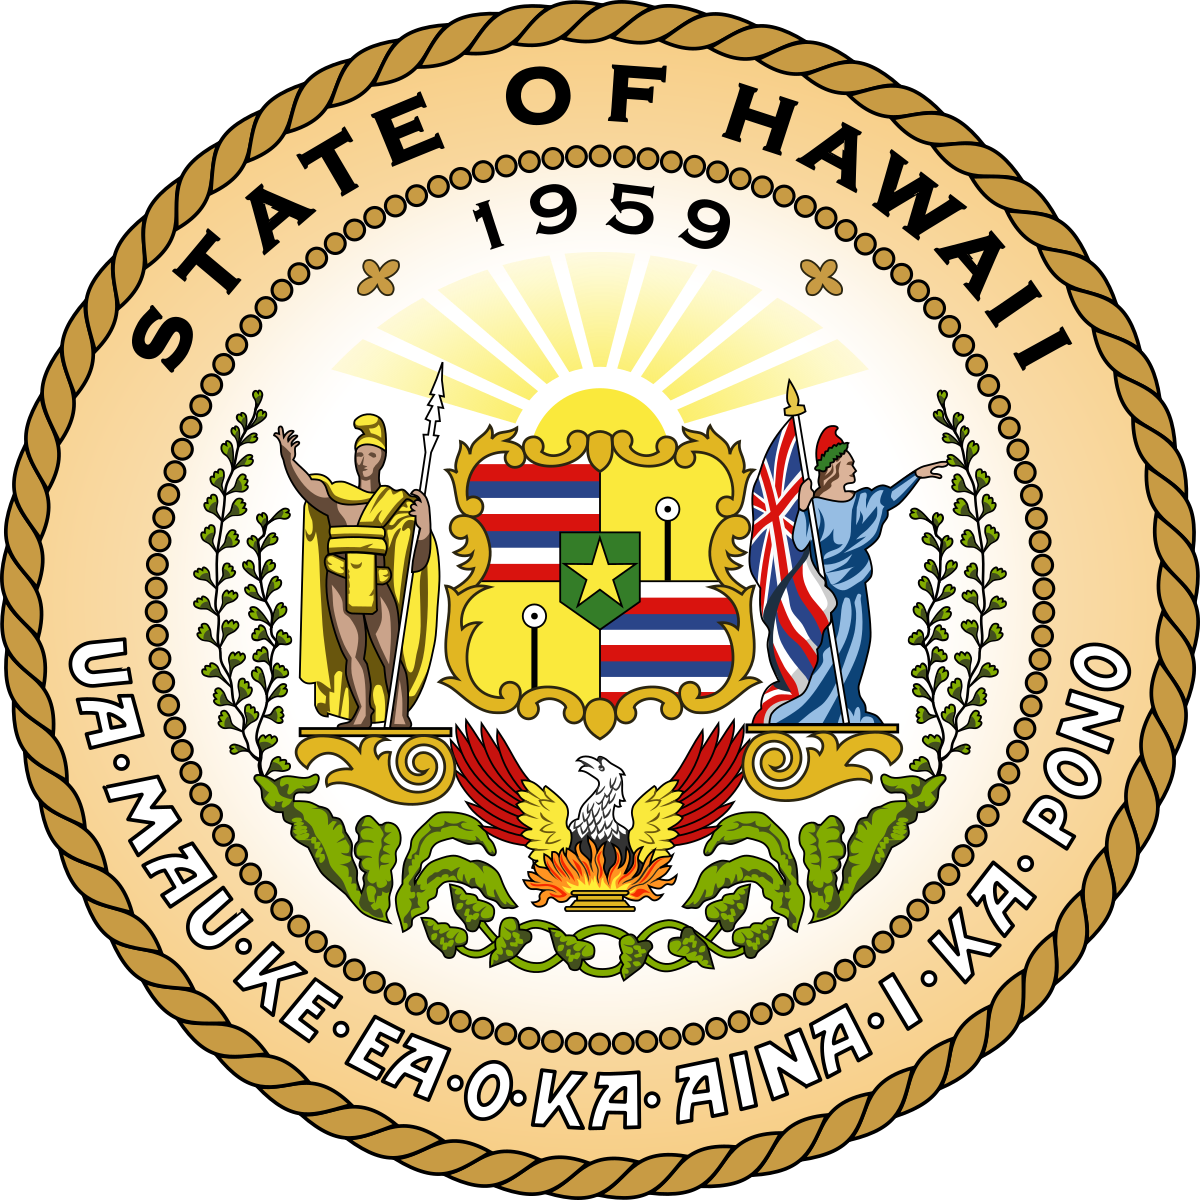 State of Hawaii Website